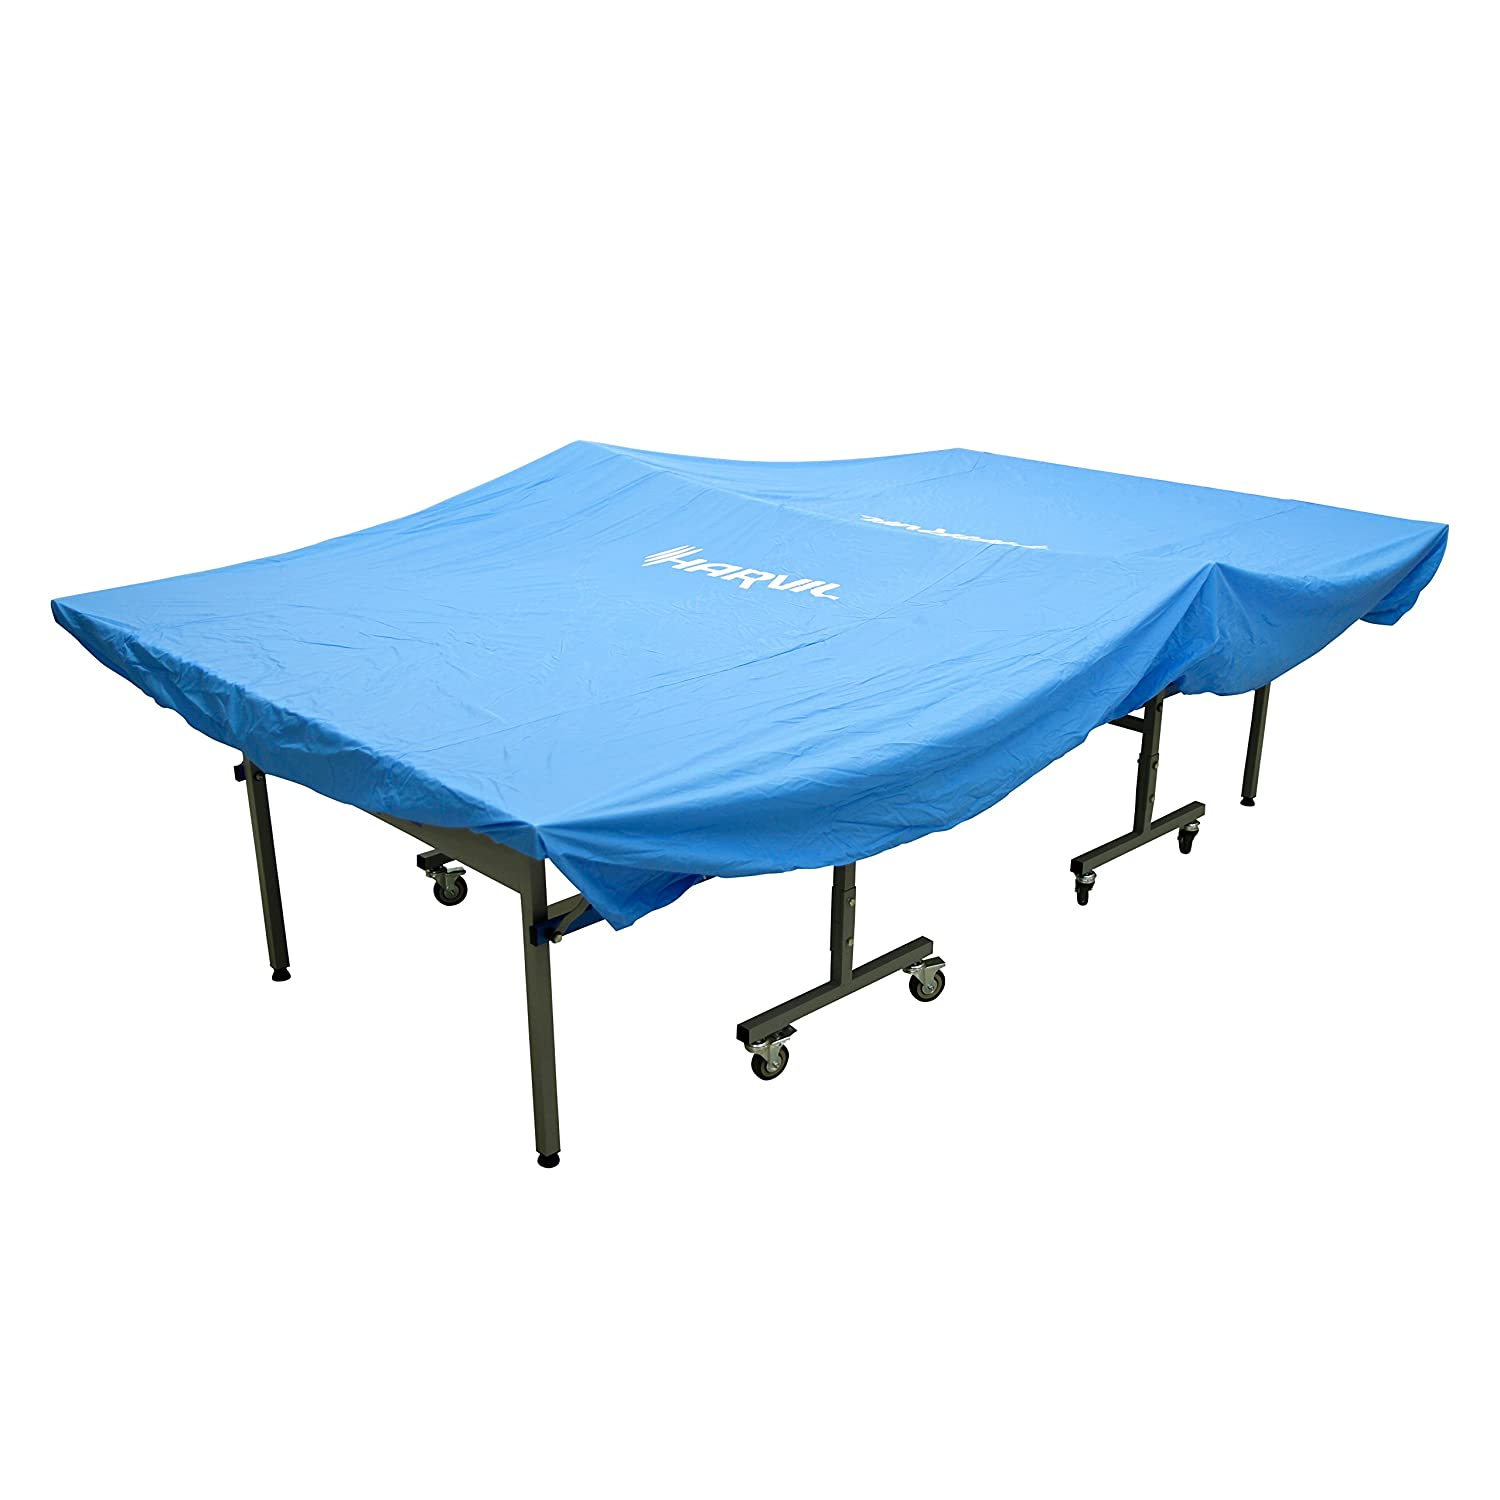 Harvil Heavy-Duty Indoor Table Tennis Table Cover with Elastic Hems B0727W57PD